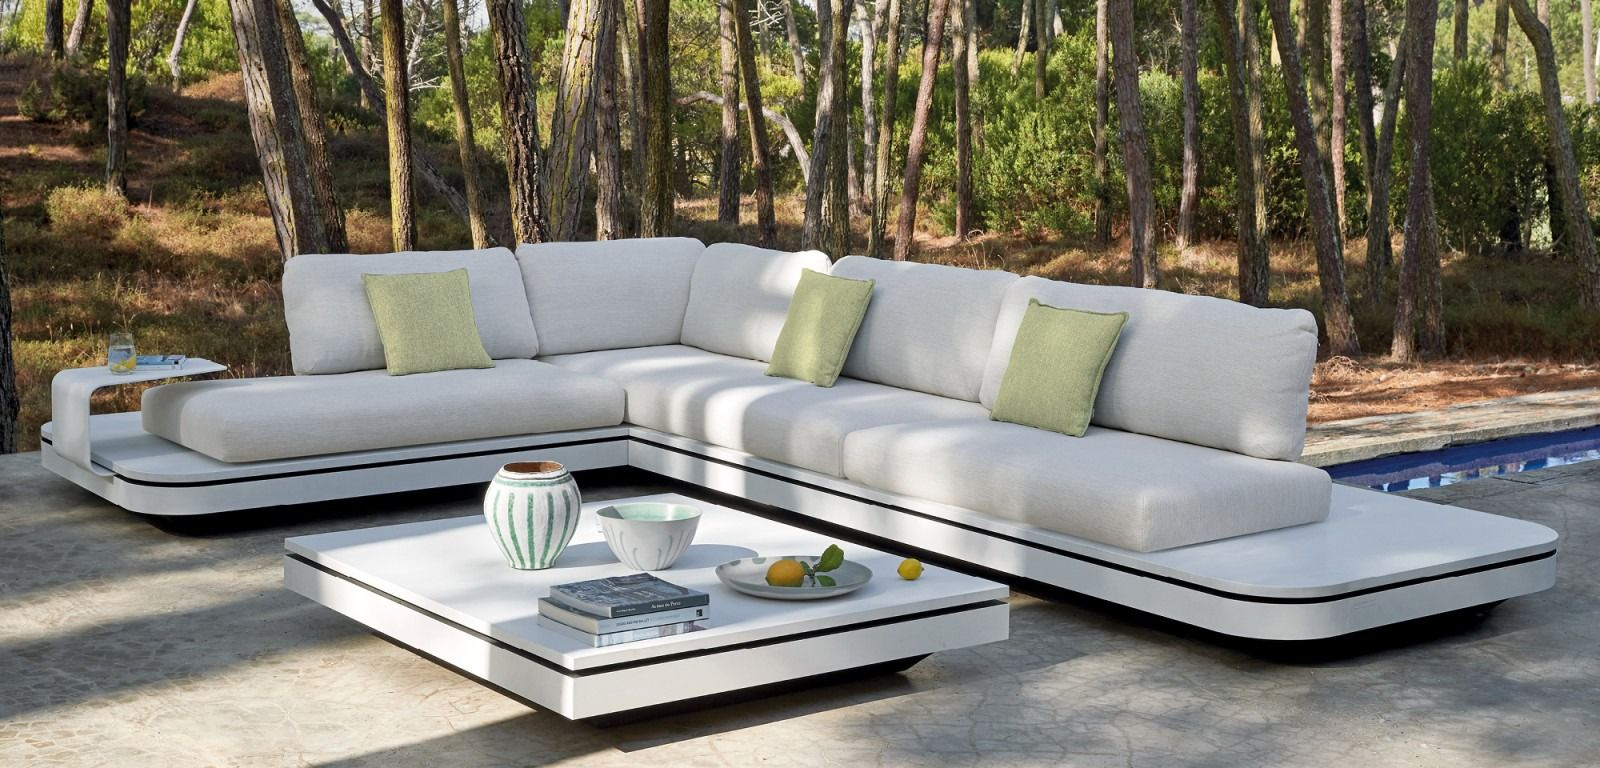 Manutti Outdoor Furniture - Manutti.com | Furniture (Division 12 ...